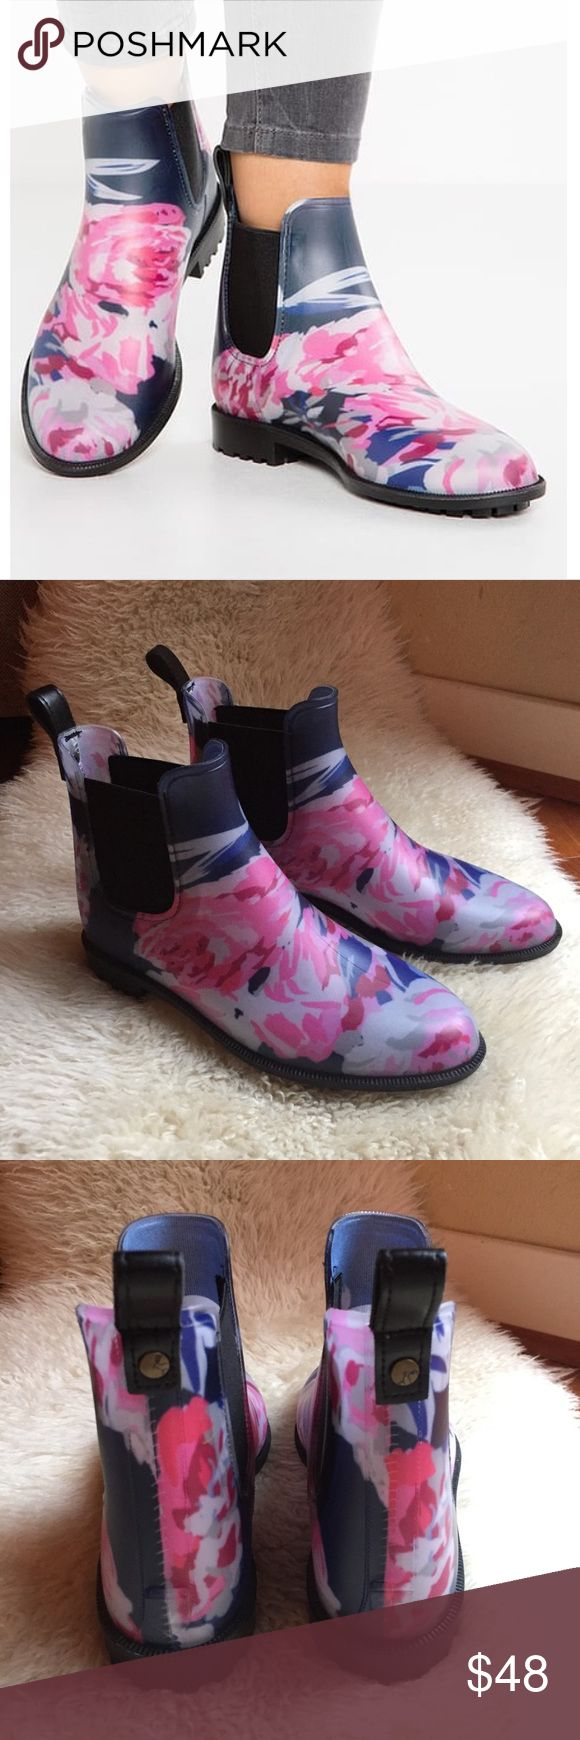 NWT Joules Rockingham Chelsea Boots These clever, neat-fitting Chelsea-style boots are made with an outer of translucent synthetic rubber to show off the eye-catching printed lining underneath. They're cool enough to wear as a regular boot but have all the benefits of a waterproof welly. Elasticated gusset & pull tabs, water-dispensing grip tread & removable insoles. Size 9, recommended for size 8 -8.5. Soles measure 11 inches long. Brand new, have never been worn. First photo is a stock…